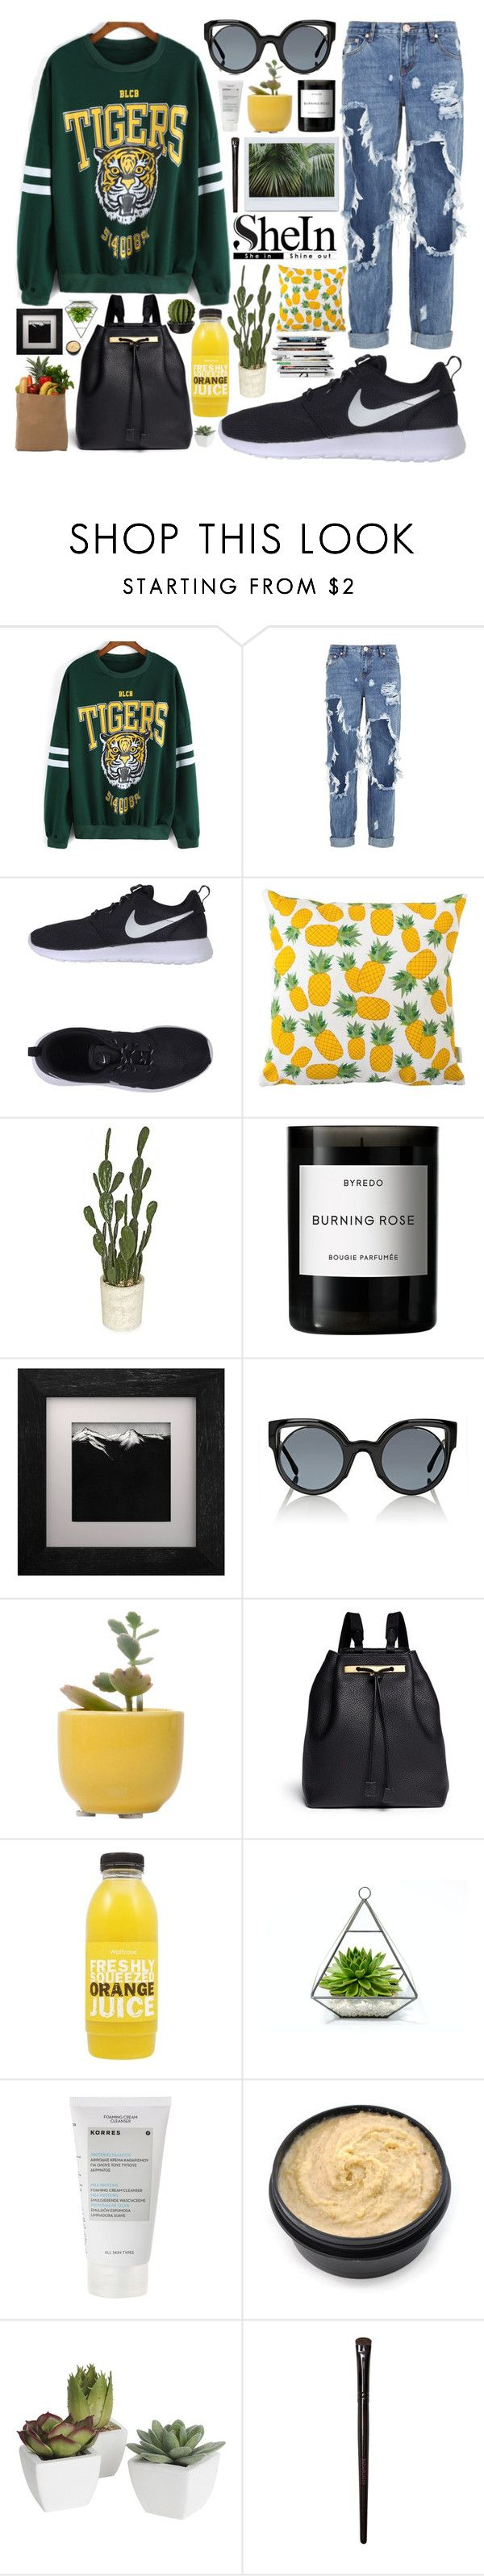 """""""no.53"""" by azrajukic ❤ liked on Polyvore featuring One Teaspoon, NIKE, Rosa & Clara Designs, Byredo, Fendi, Dot & Bo, The Row, Korres, Pier 1 Imports and Bourjois"""